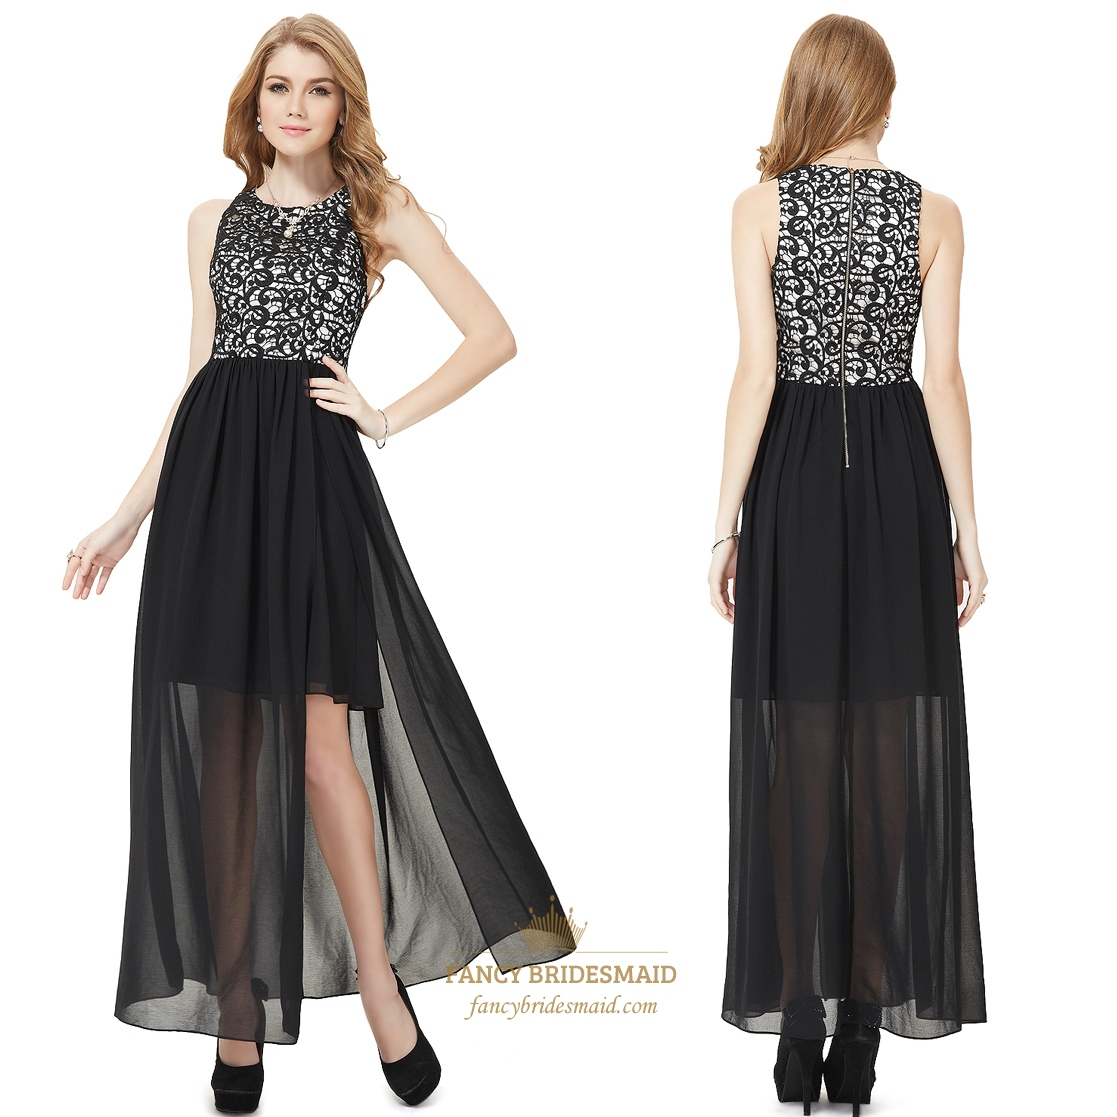 Black And White Prom Dresses With Slits Up The Side,Black Lace Top ...